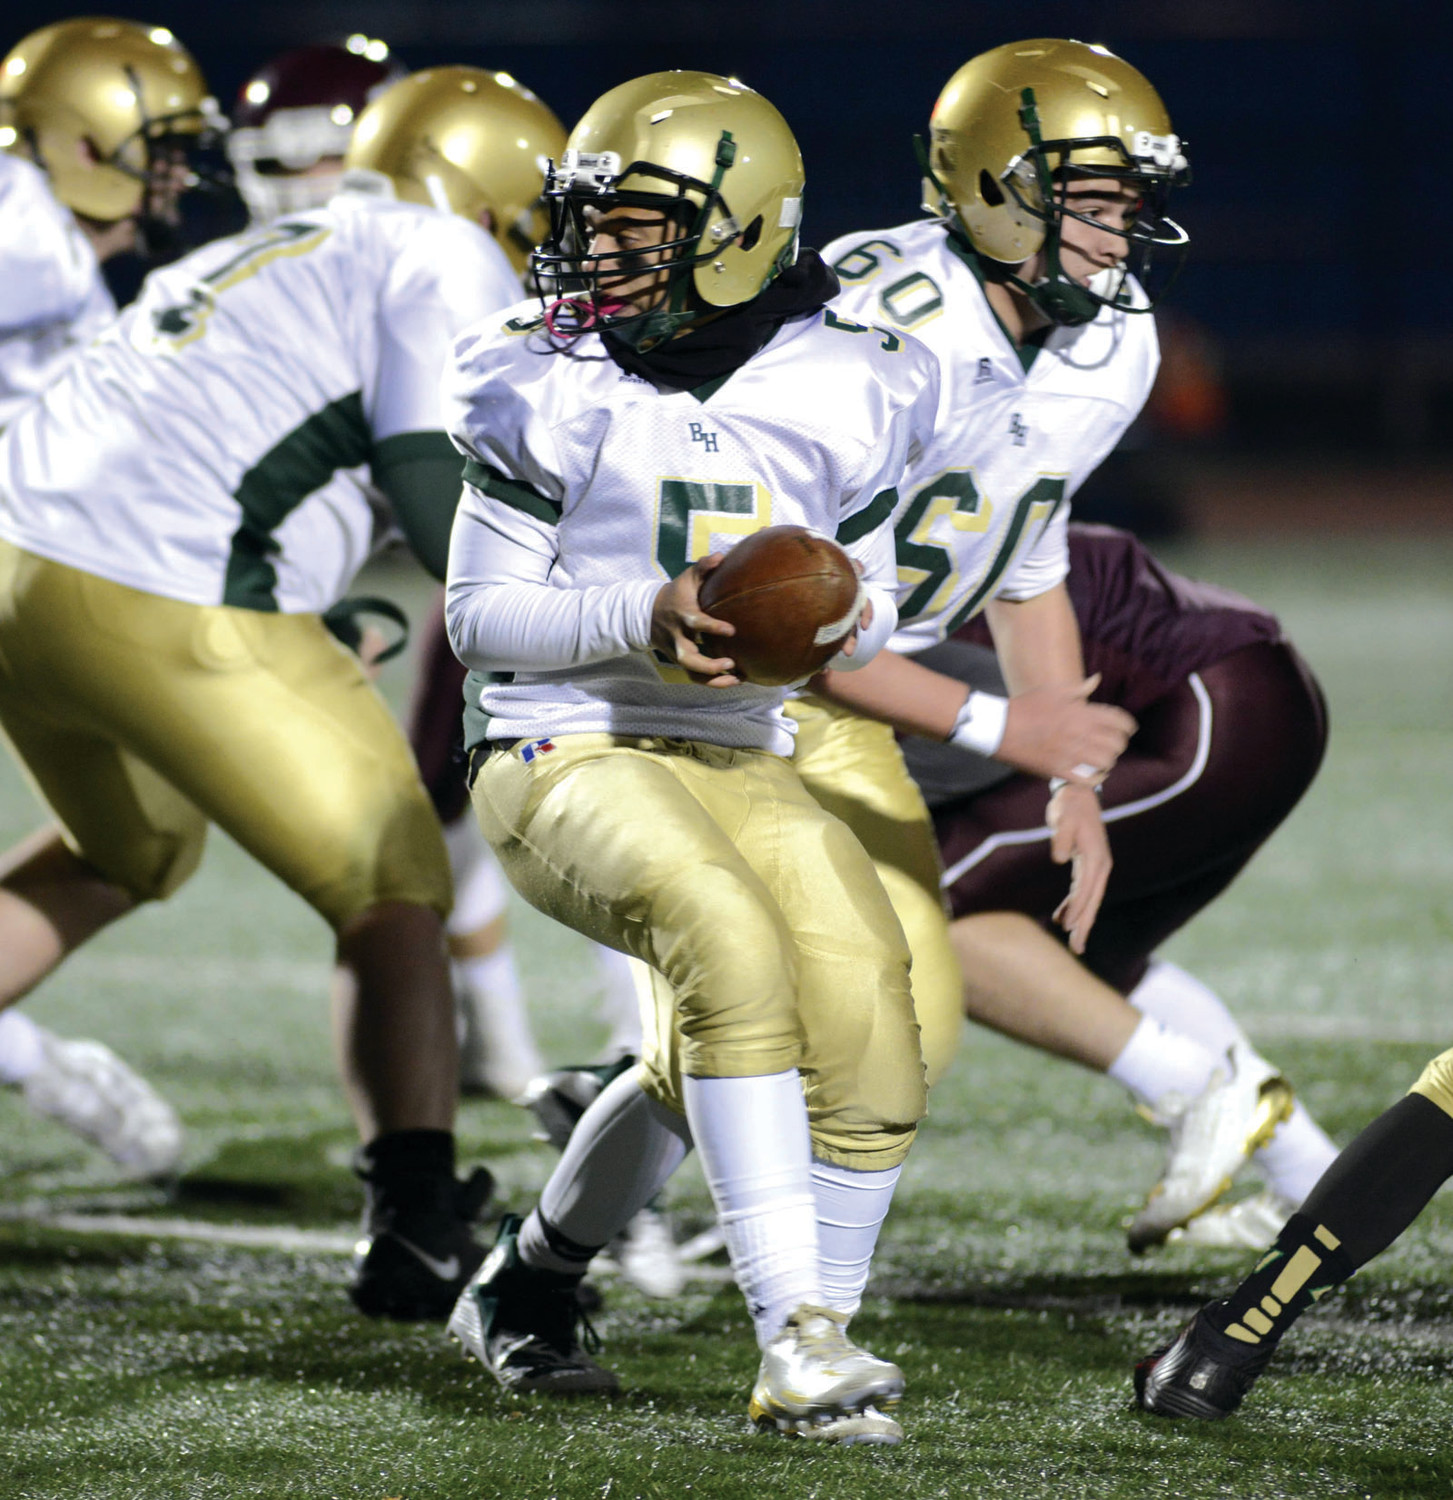 IN THE POCKET: Bishop Hendricken quarterback Sensere Fernandes hands the ball off. (Submitted photo)